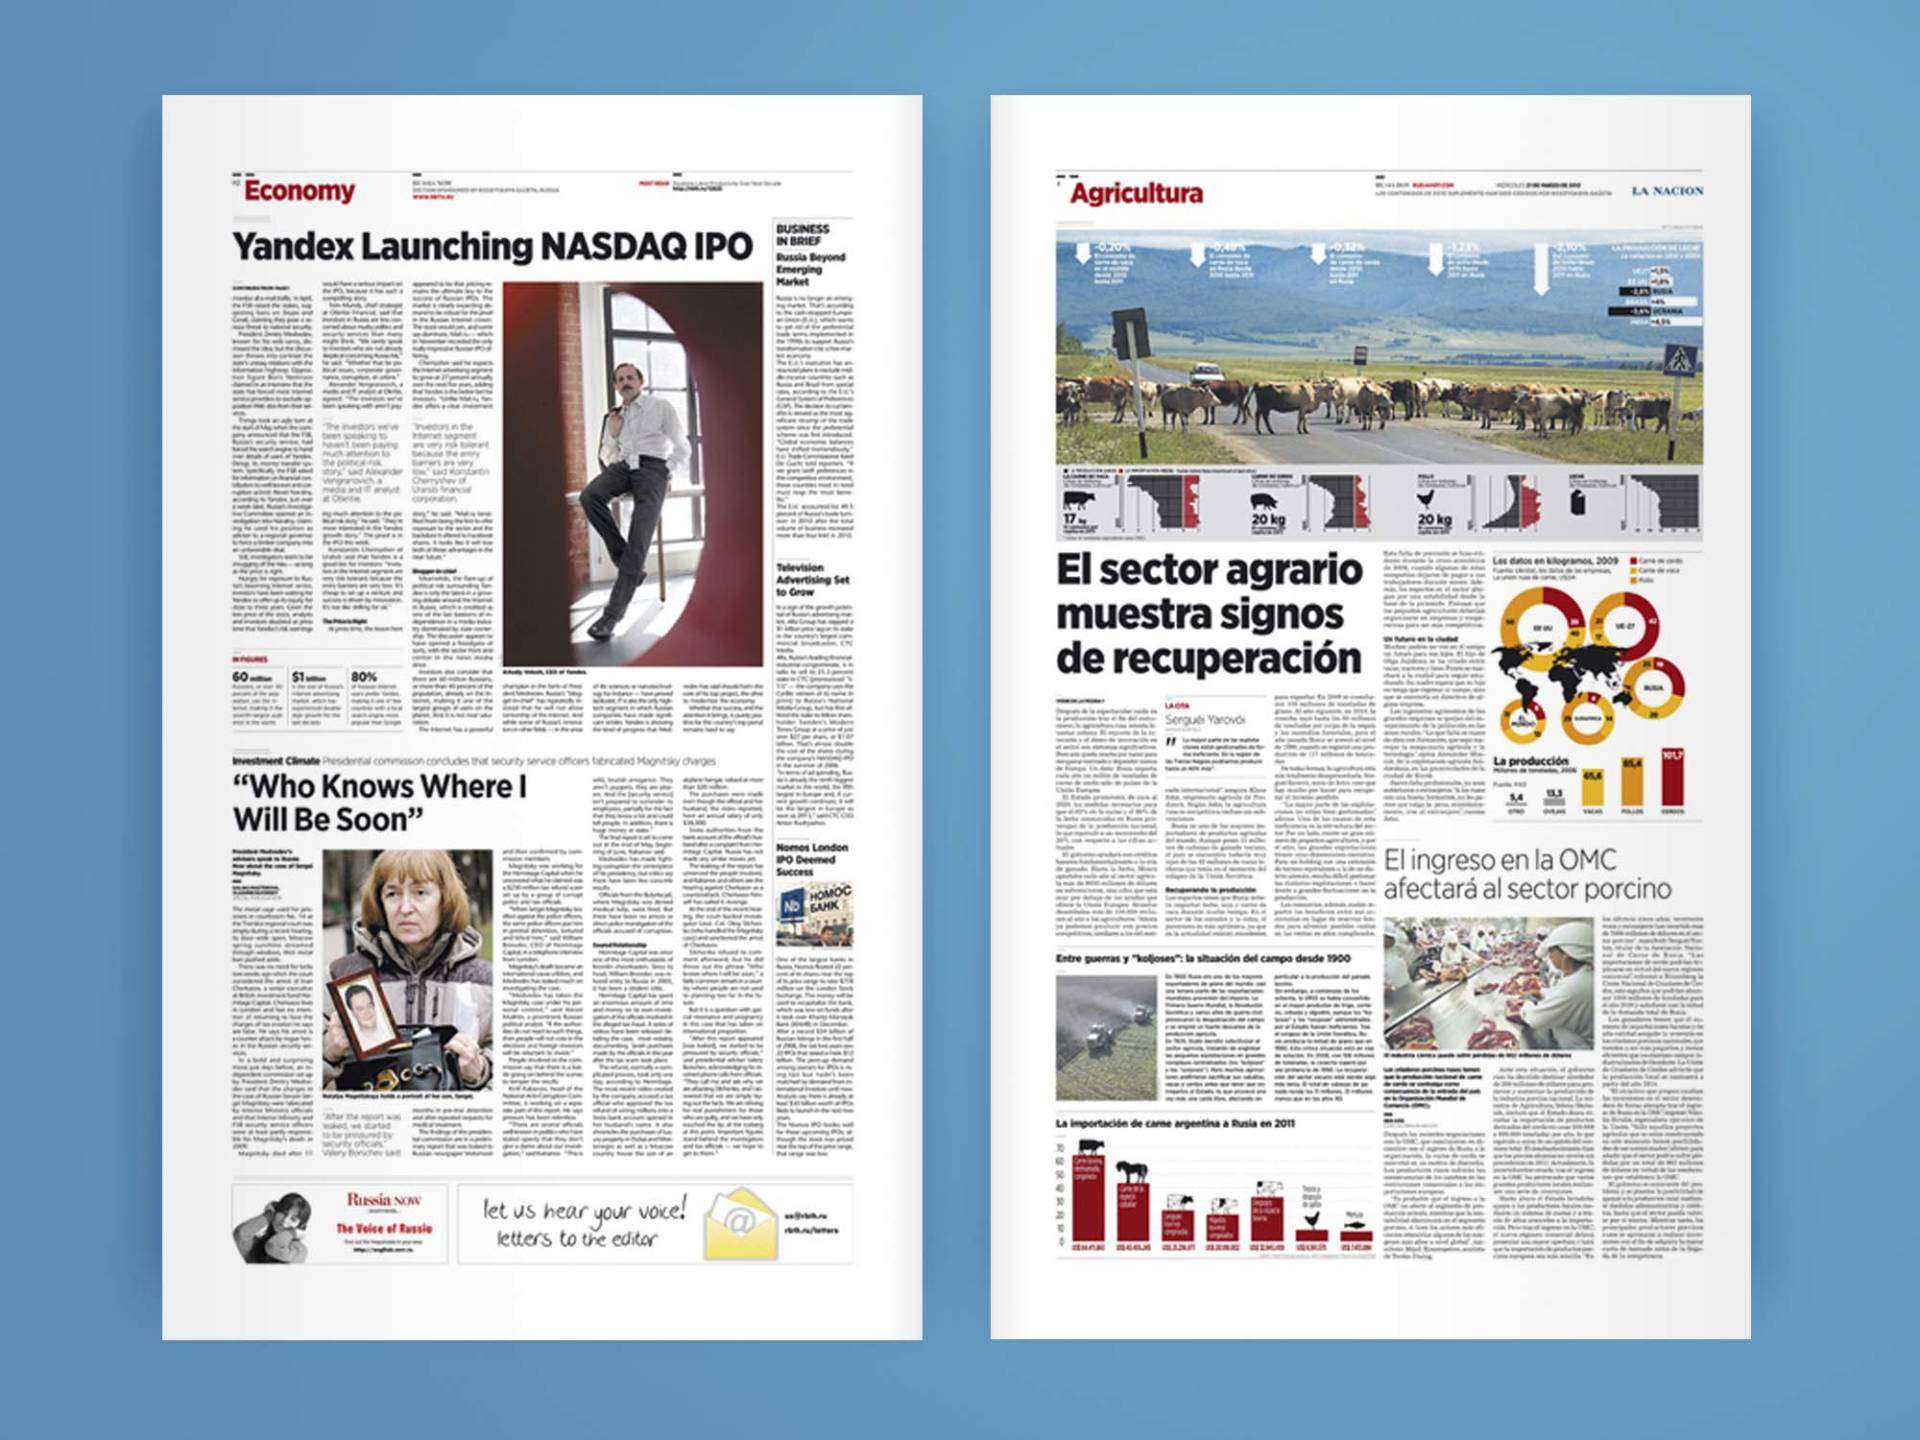 Russia_Beyond_The_Headline_03_Wenceslau_News_Design